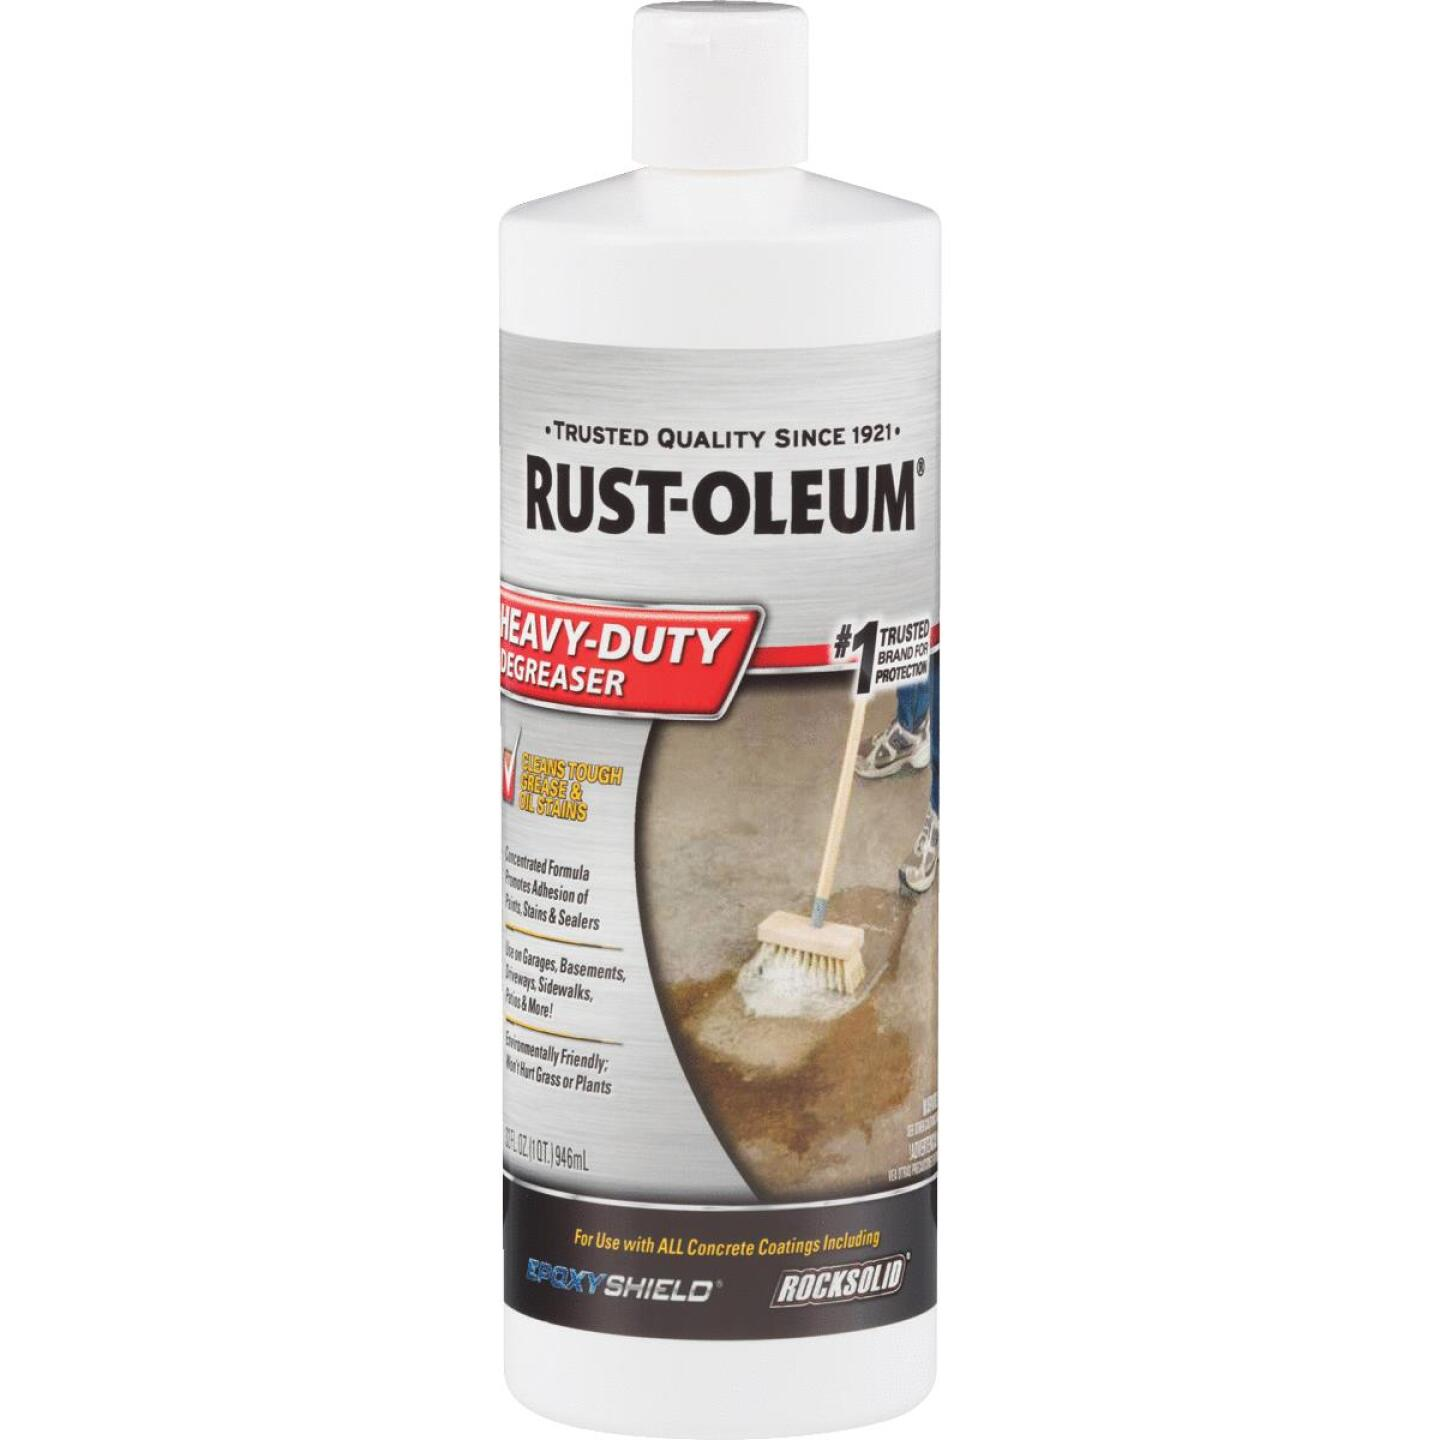 Rust-Oleum 32 Oz. Heavy-Duty Degreaser Image 1